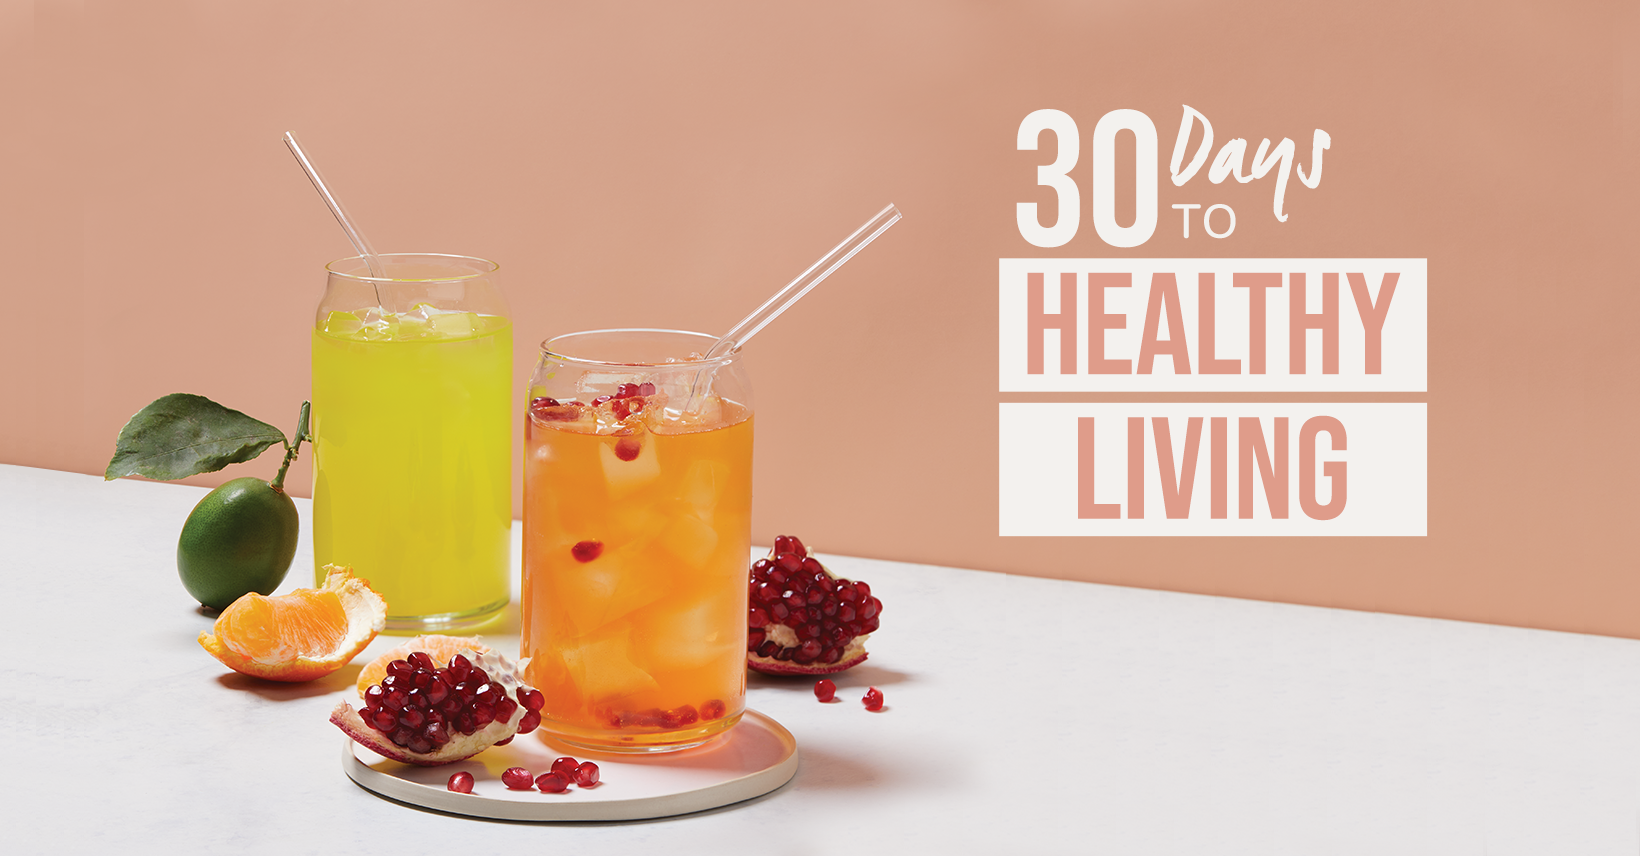 Arbonne's 30 Day to Healthy Living